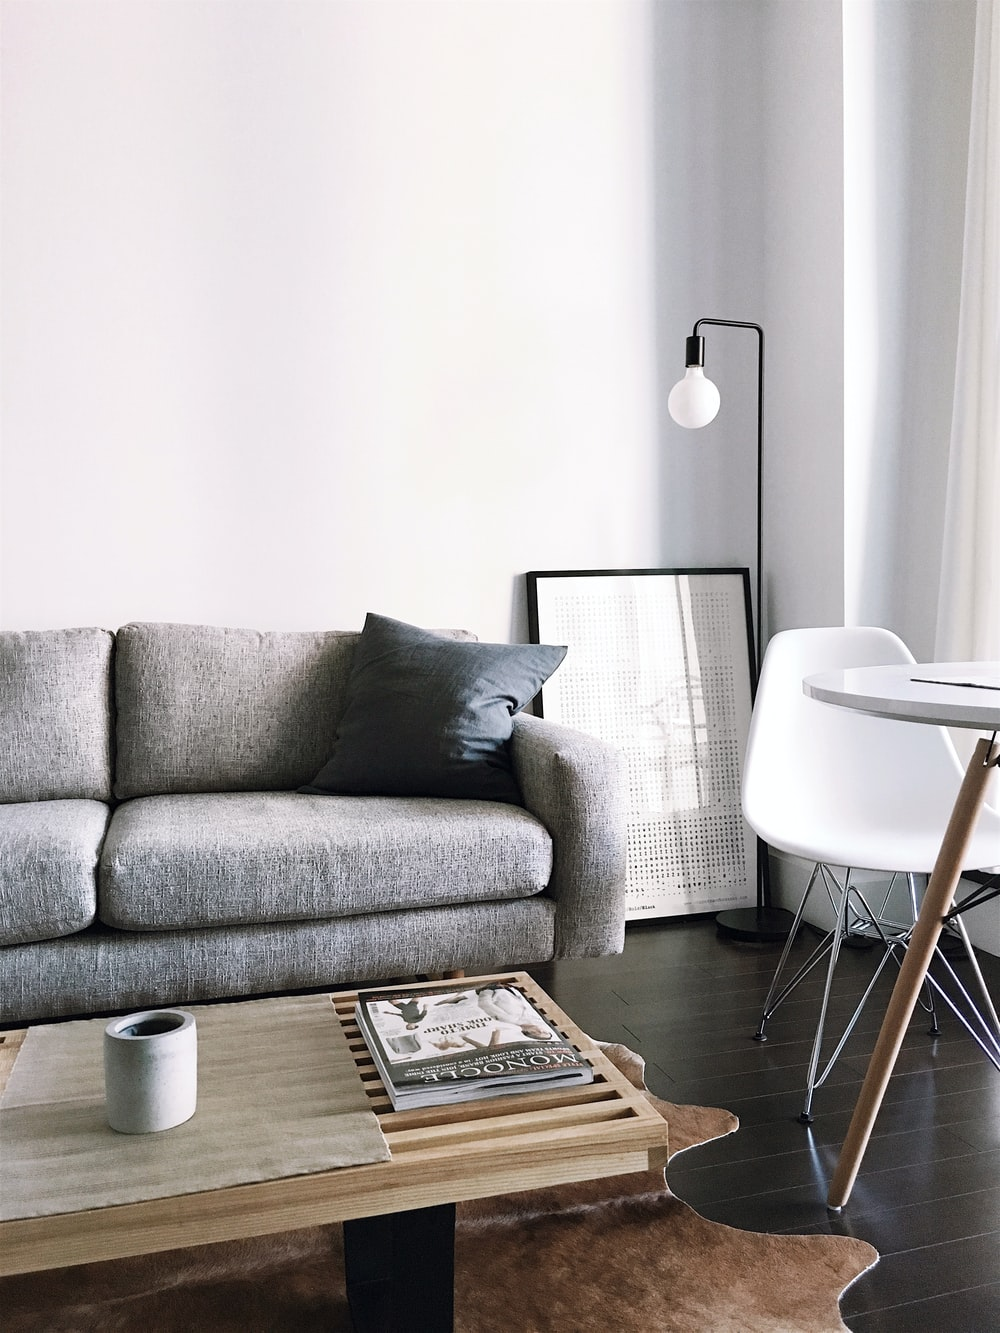 Prime Gray Fabric Sofa Photo Free Furniture Image On Unsplash Pabps2019 Chair Design Images Pabps2019Com